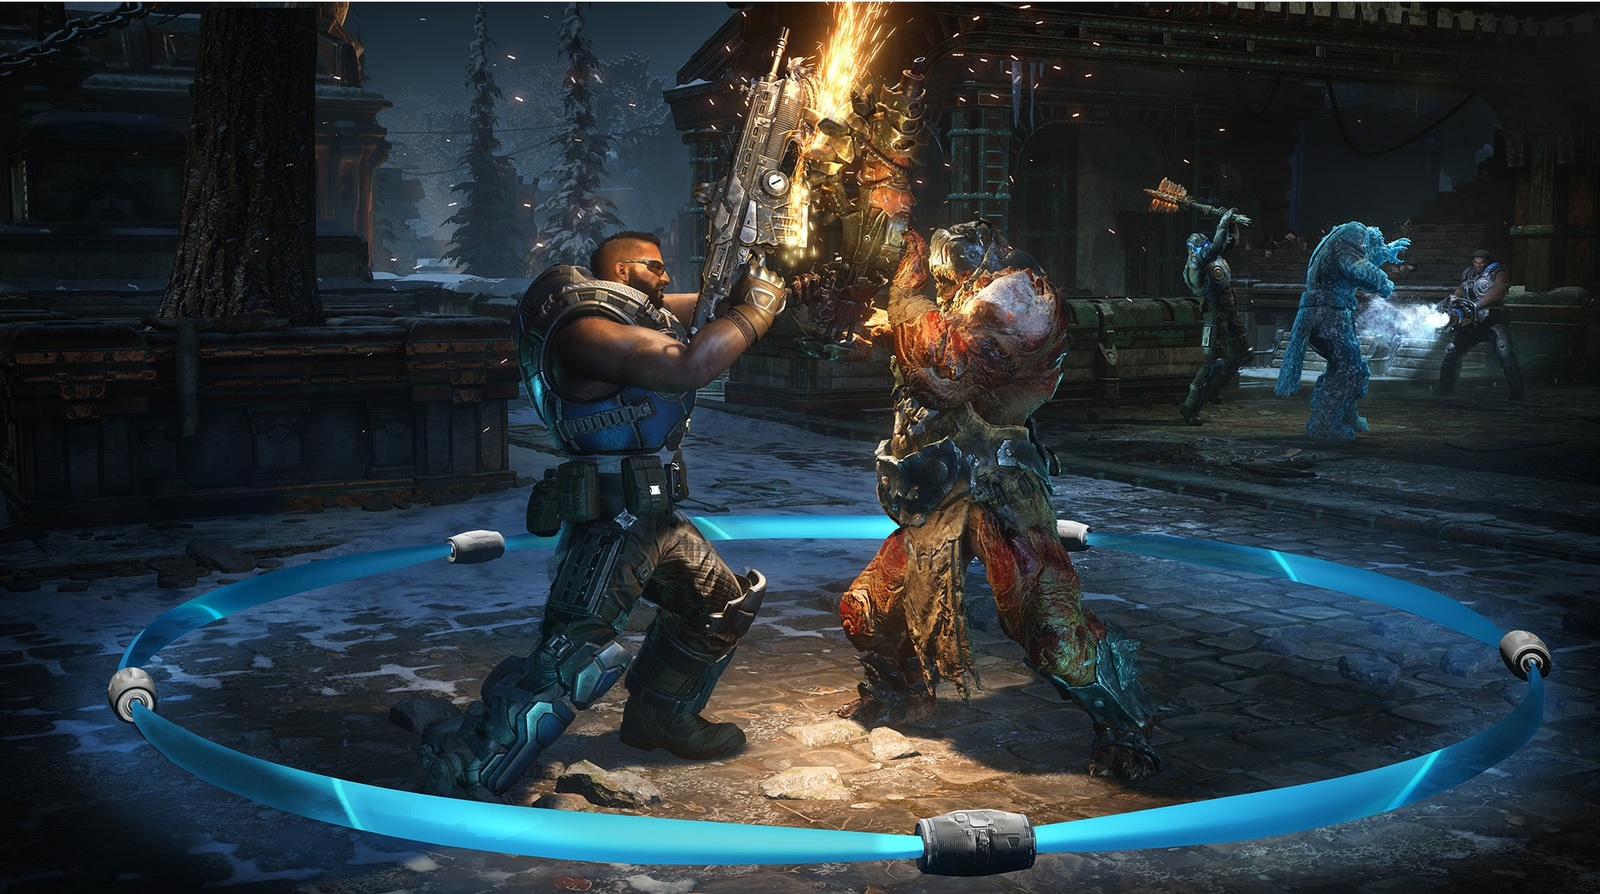 Gears of War 5 for Xbox One image